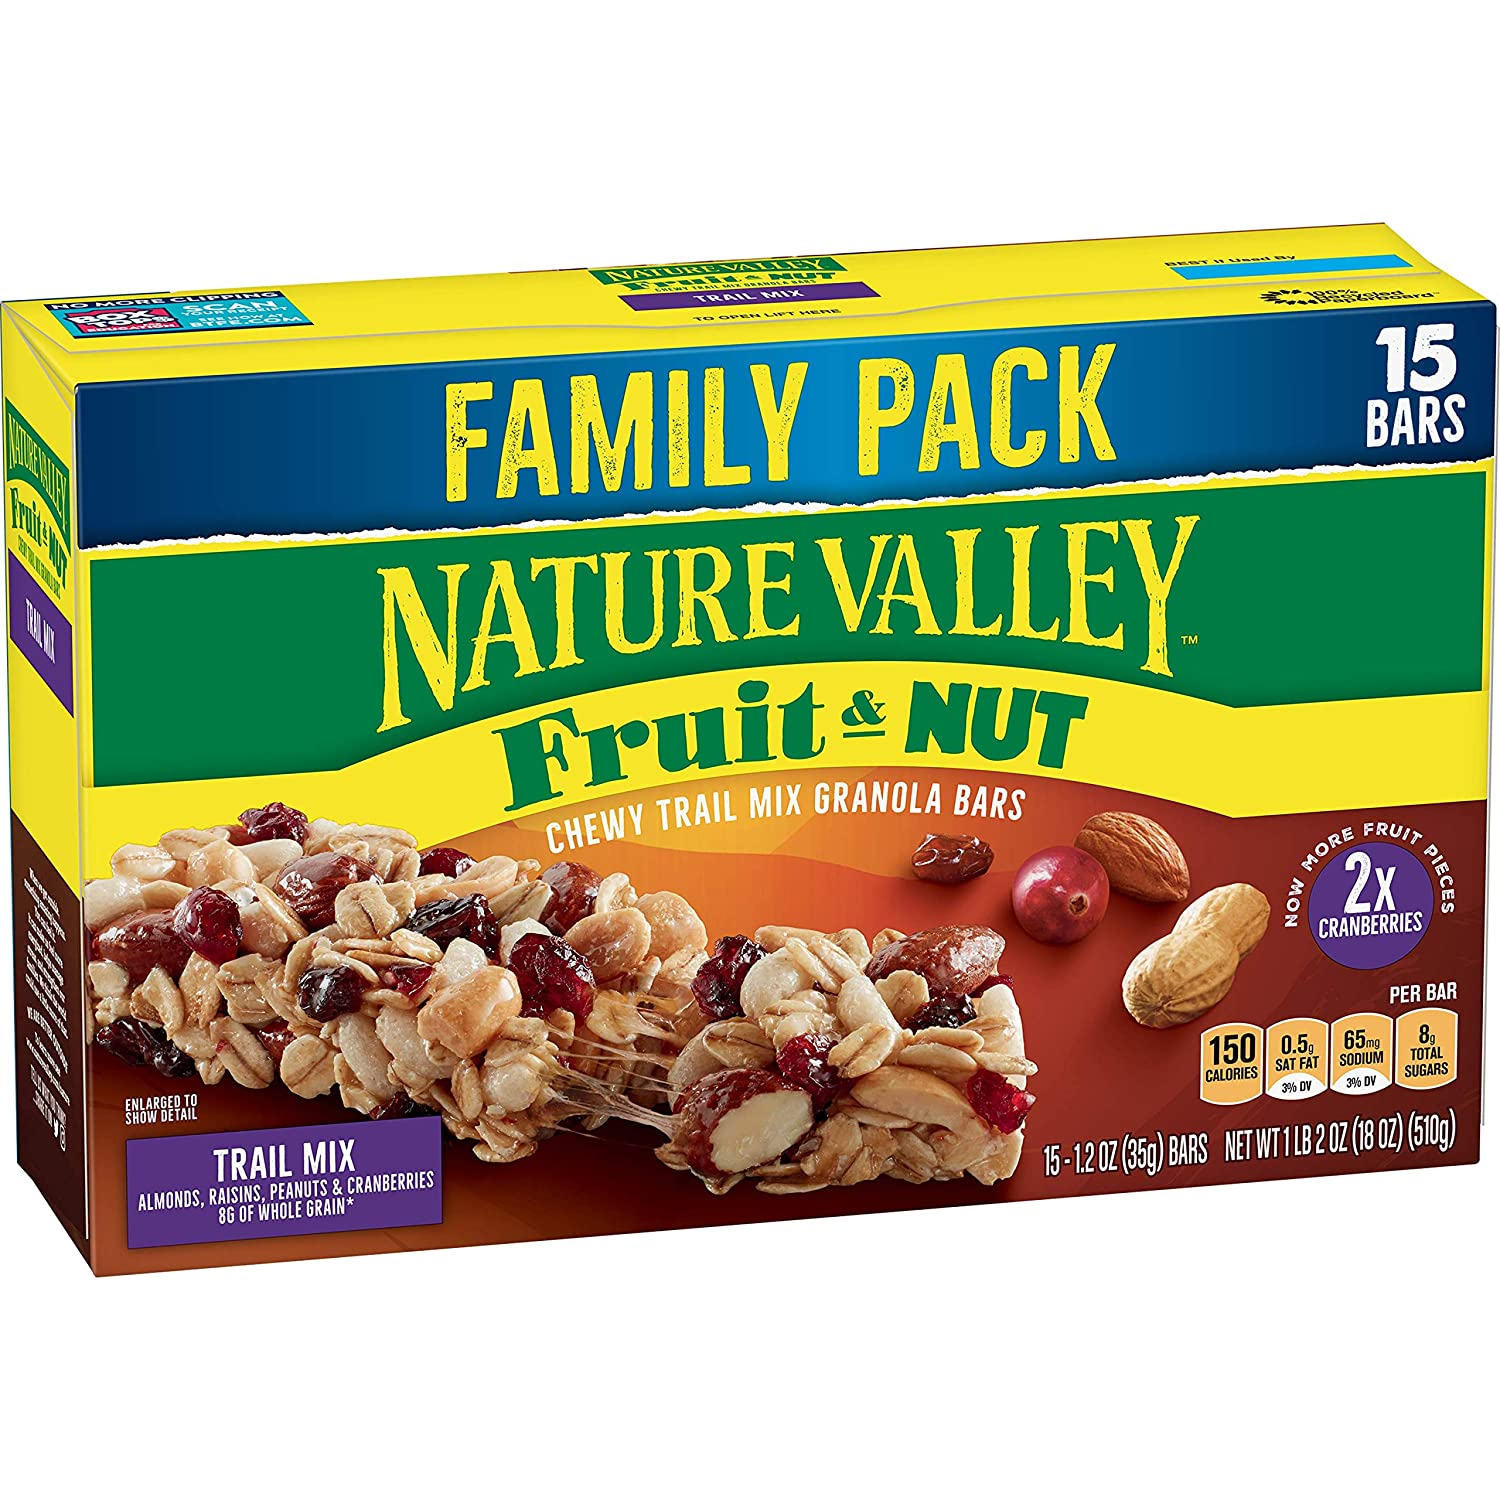 Nature Valley Granola Bars, Fruit & Nut, Chewy Trail Mix Granola Bars, 15 count